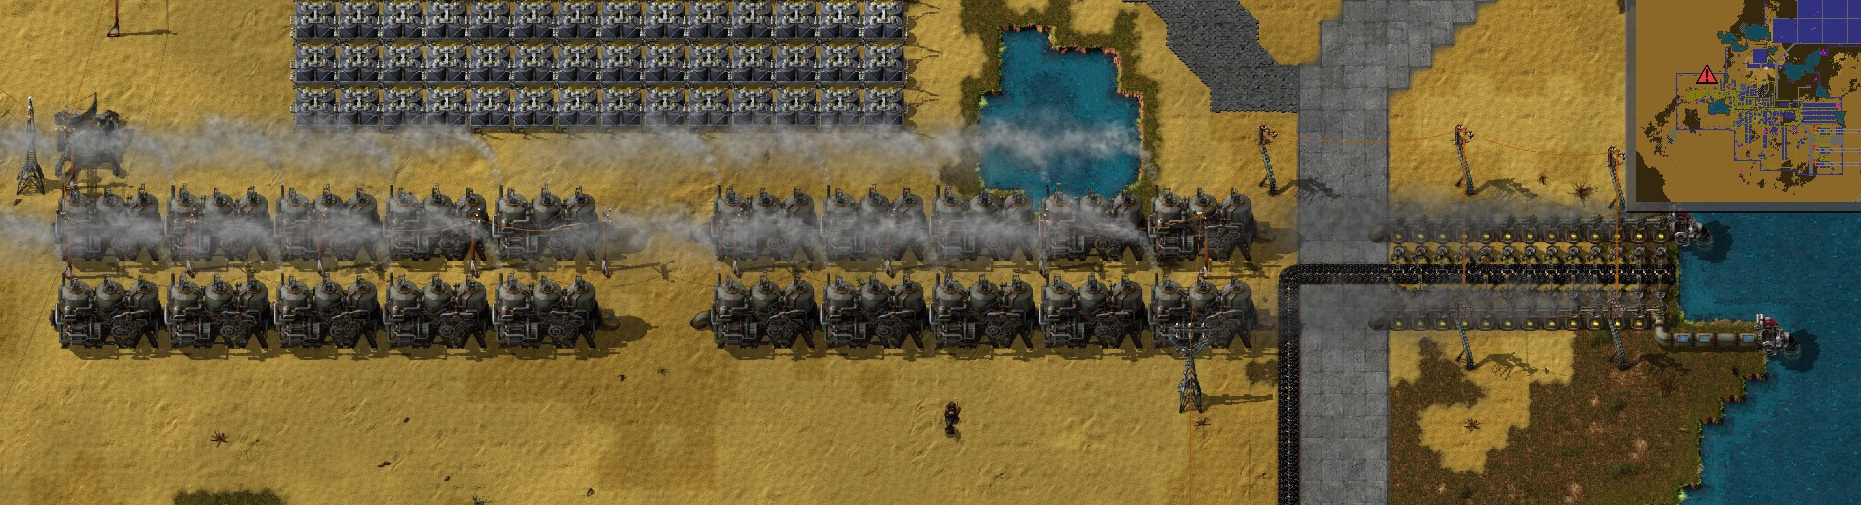 Felsebiyat Dergisi – Popular Factorio Steam Engine